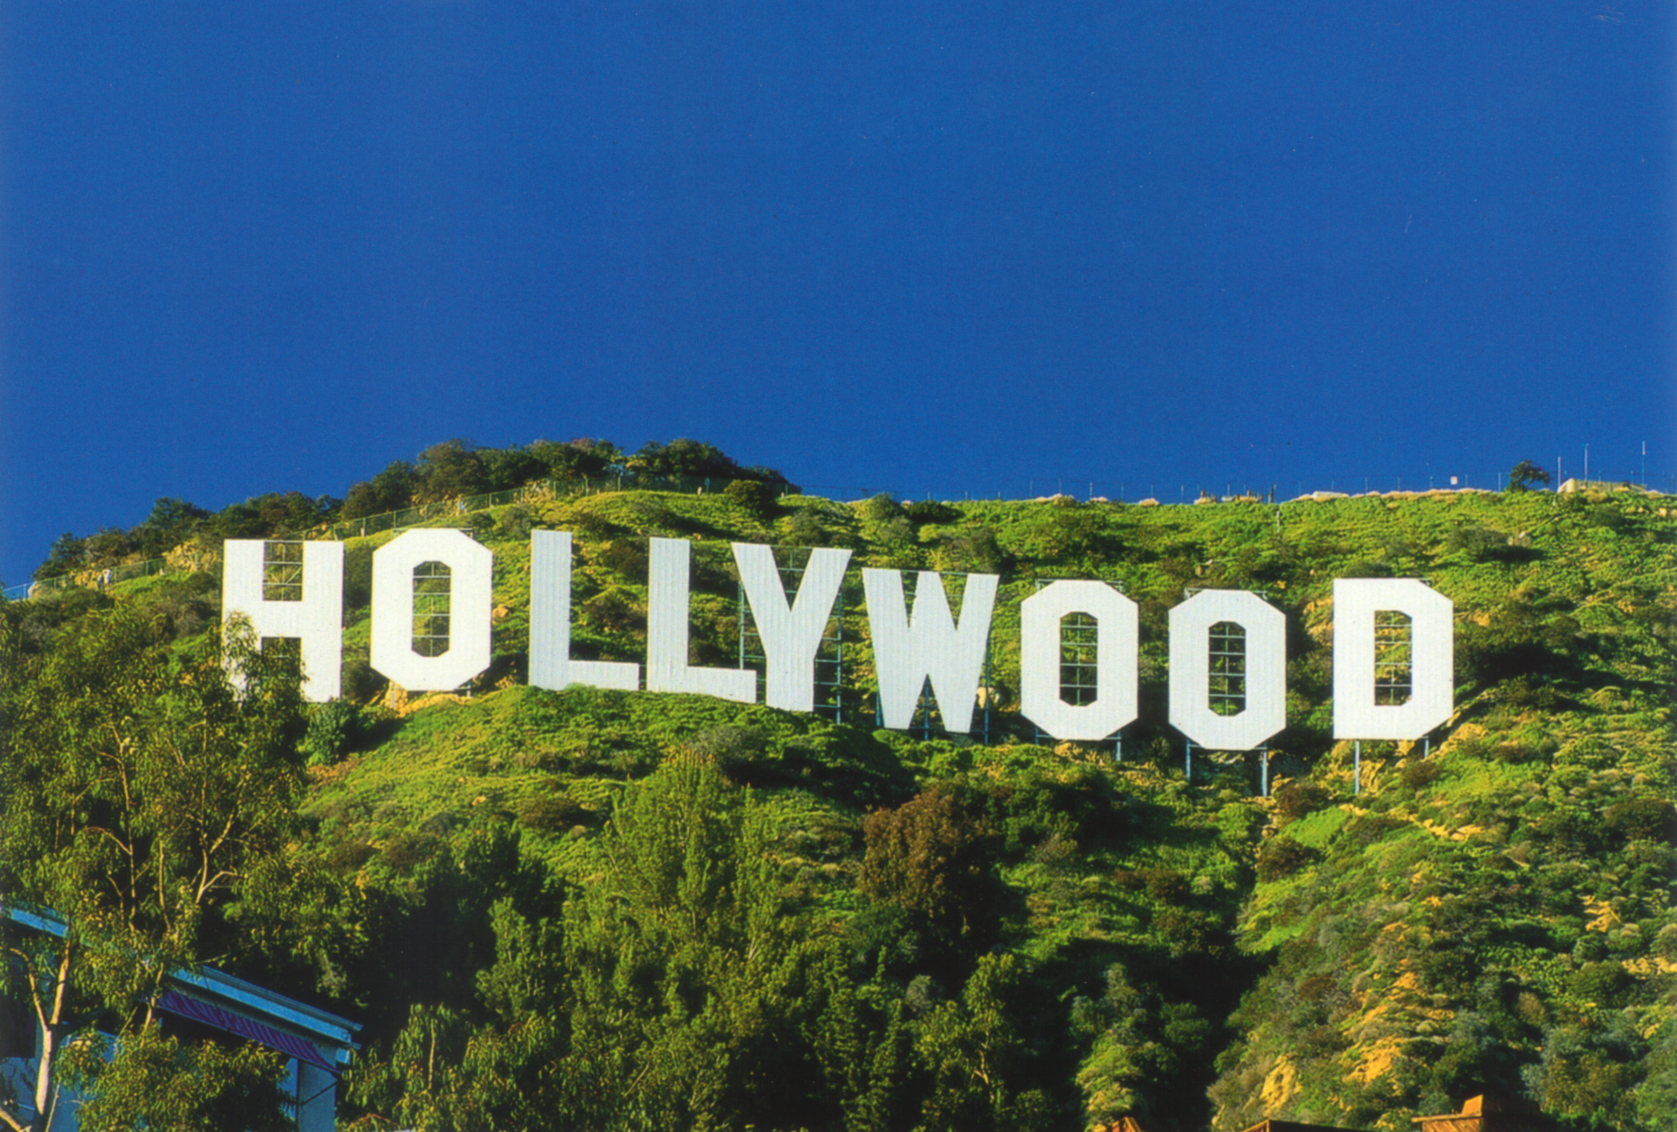 hollywood sign Political And Pop Culture Influence